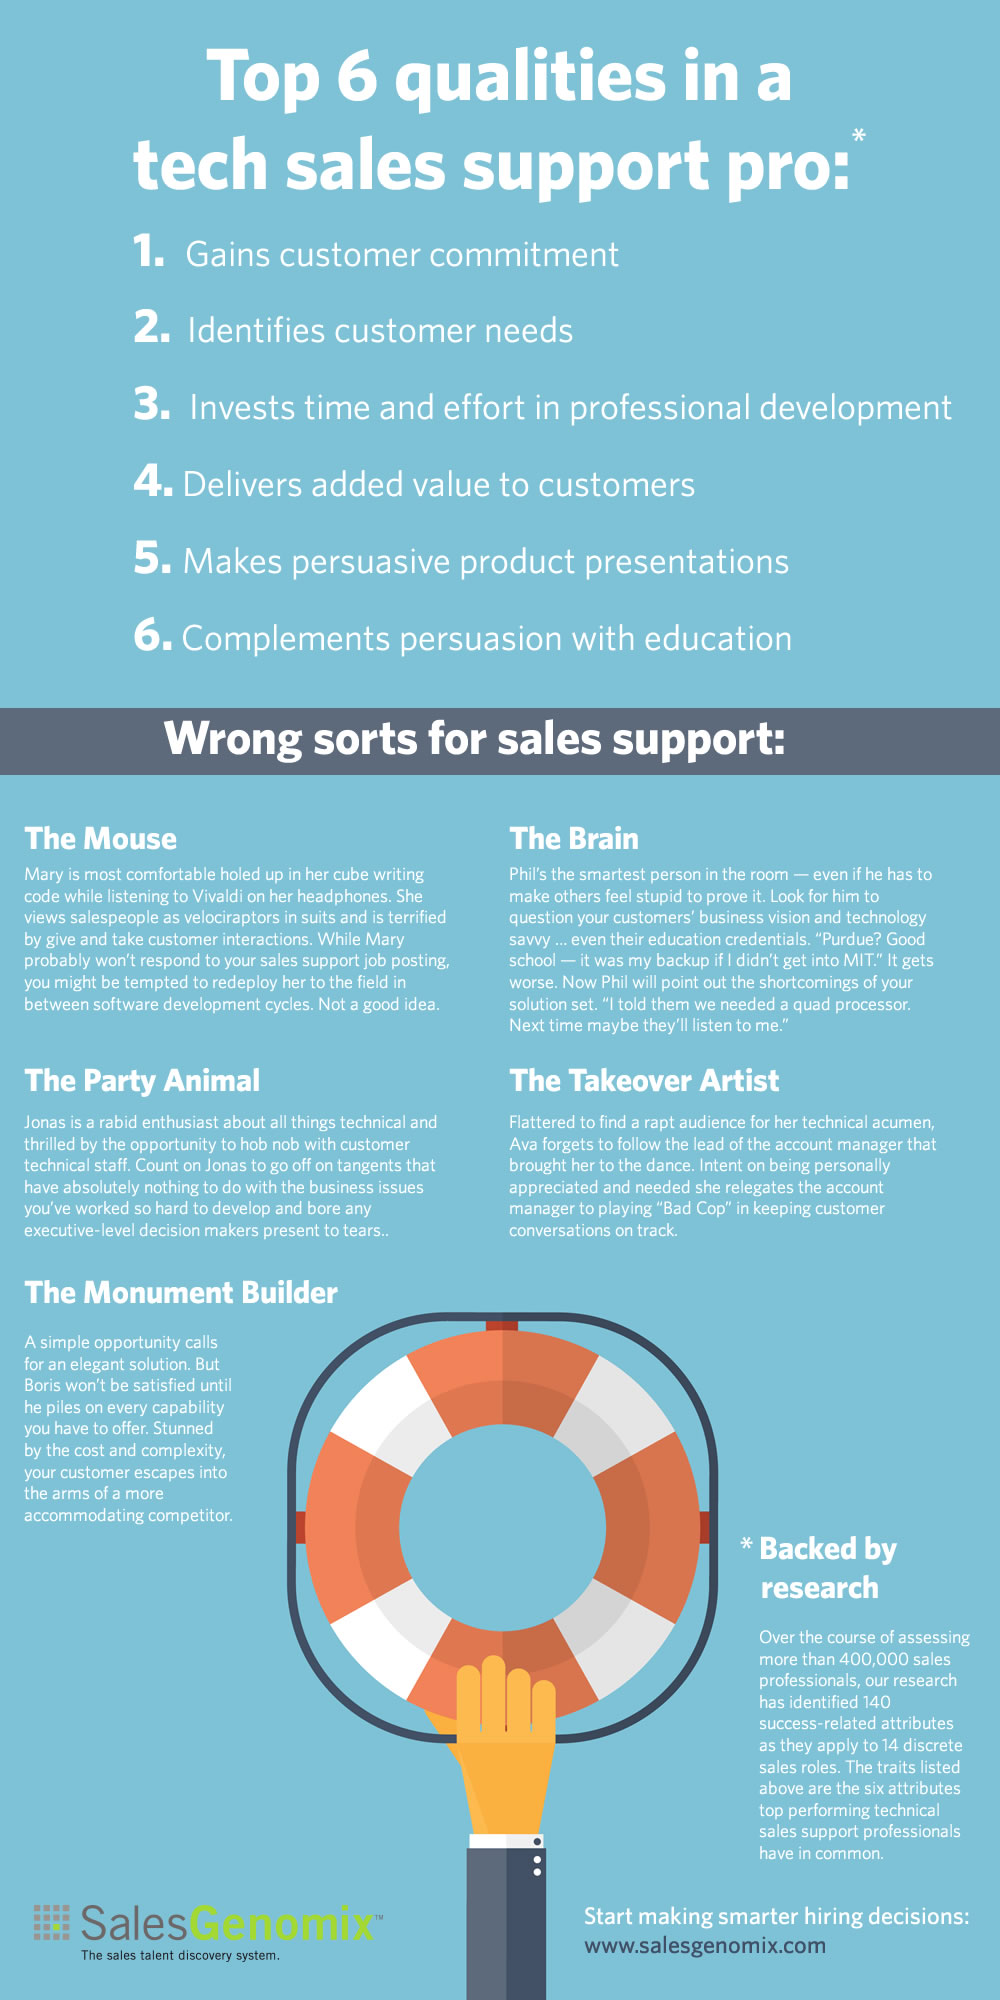 technical sales support pros  u2013 6 traits of top performers